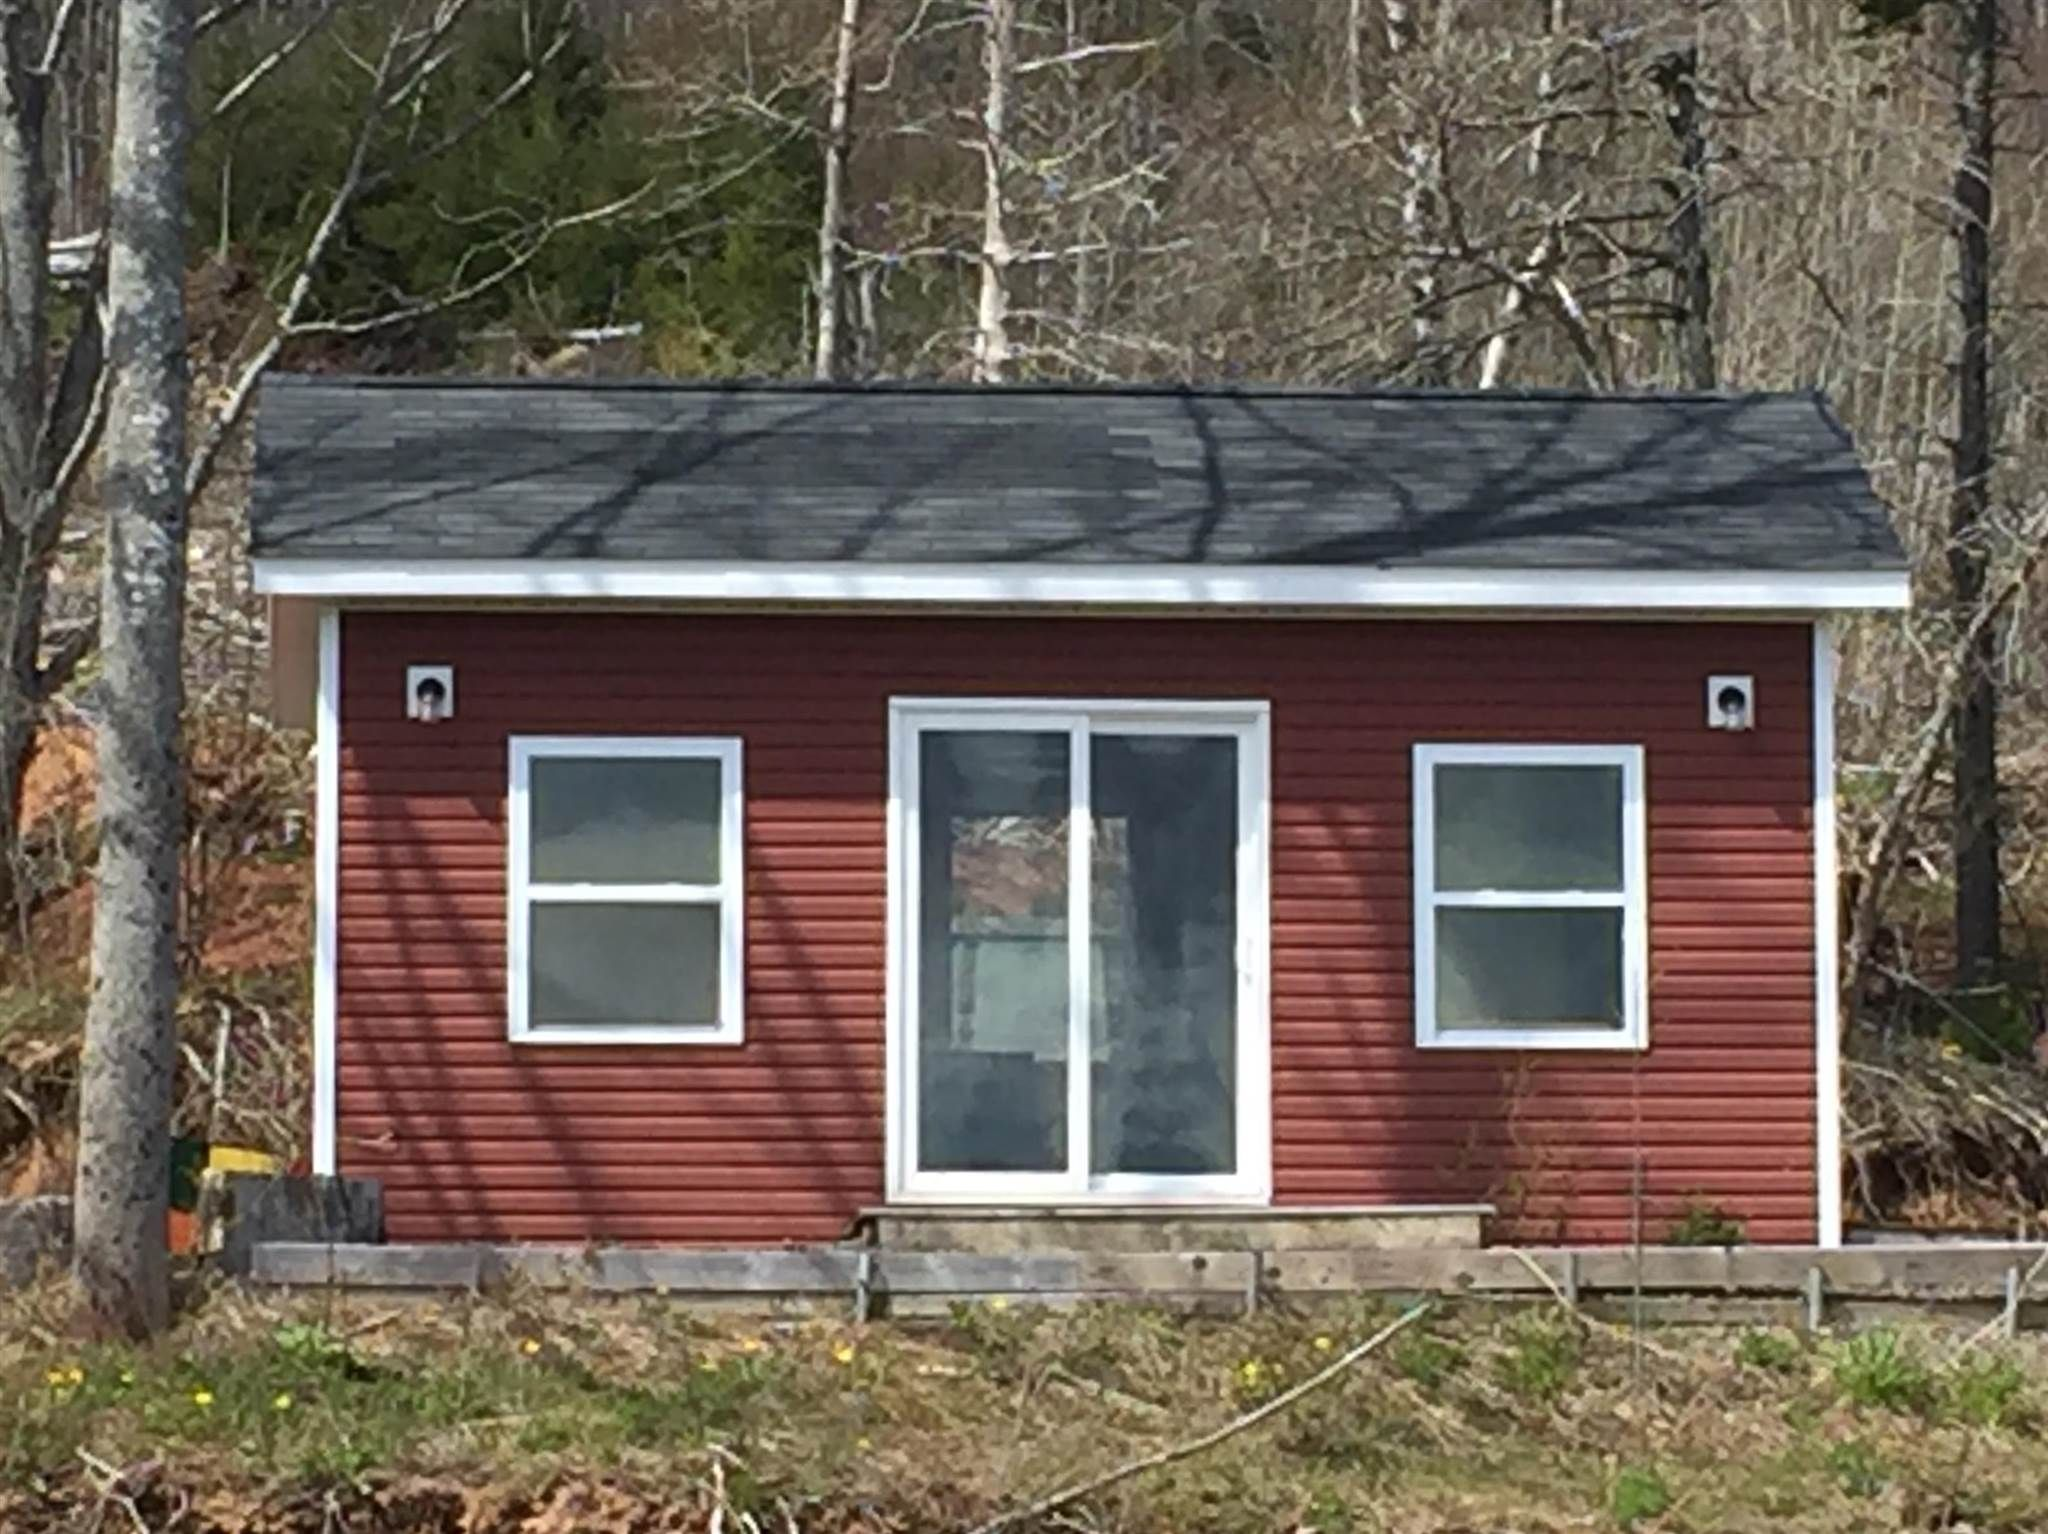 Main Photo: 808 Morden Road in Weltons Corner: 404-Kings County Residential for sale (Annapolis Valley)  : MLS®# 202102894